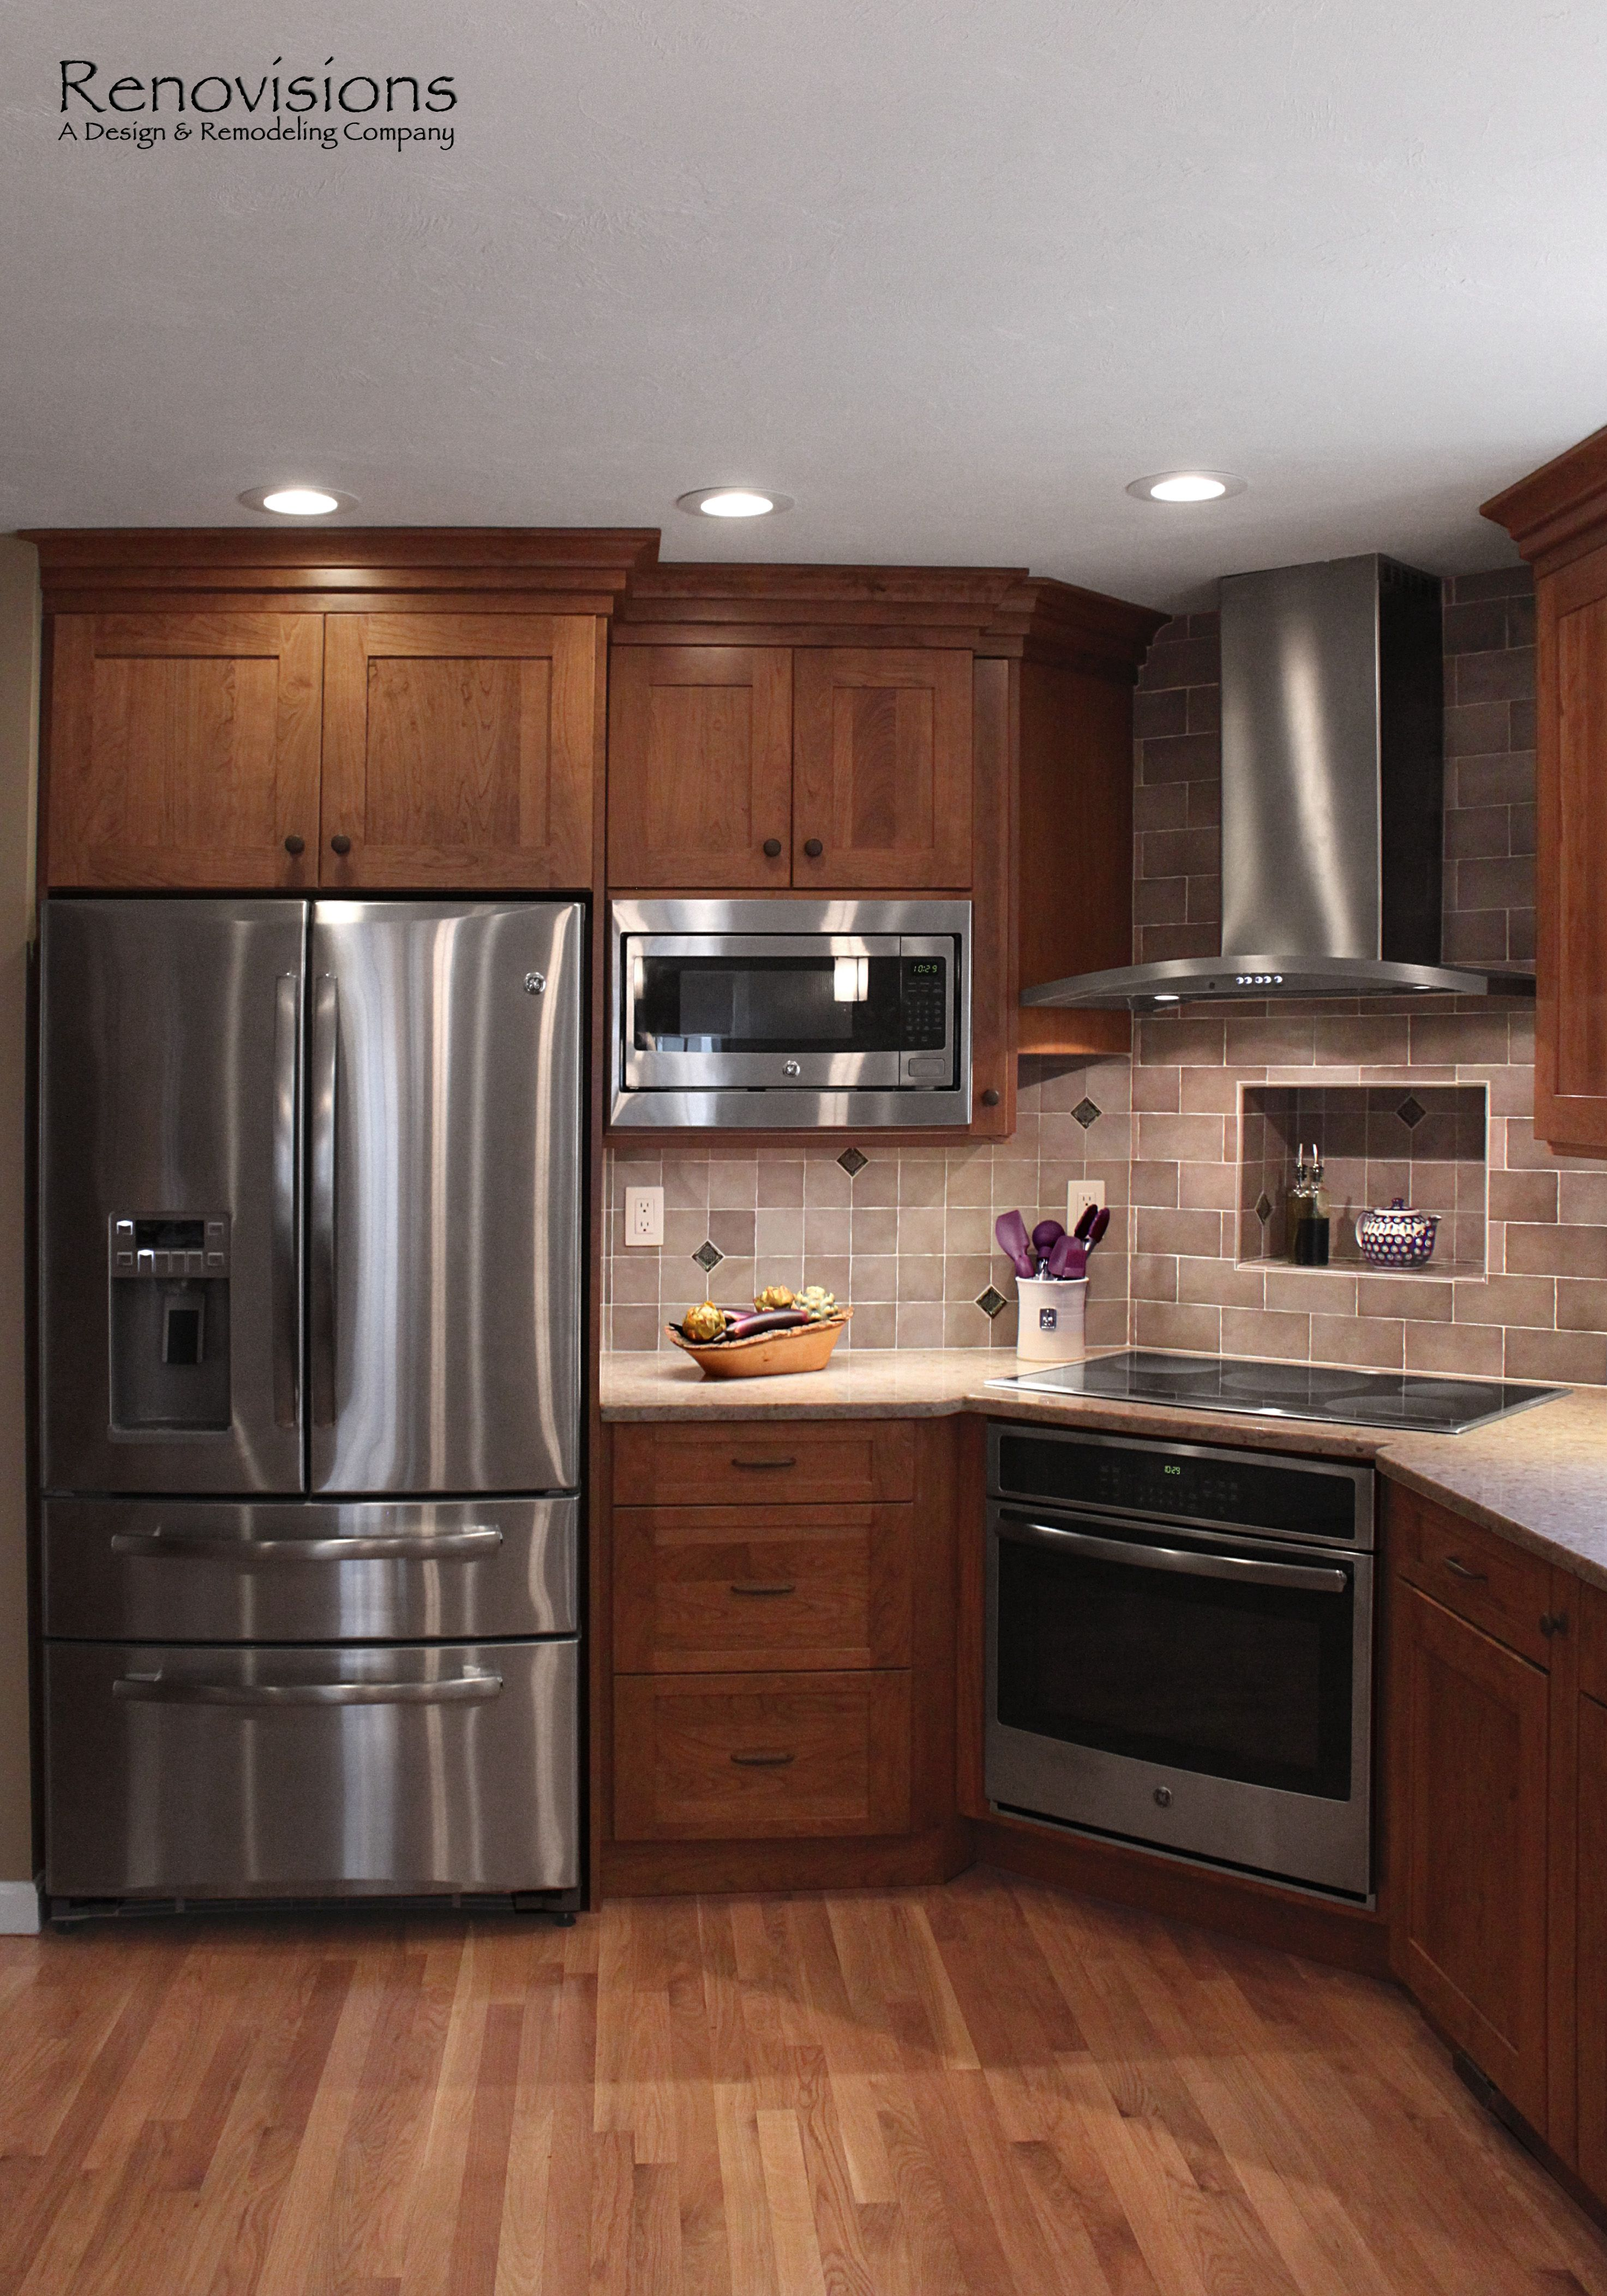 kitchen remodel by renovisions induction cooktop stainless steel appliances cherry cabinets on kitchen remodel appliances id=69558